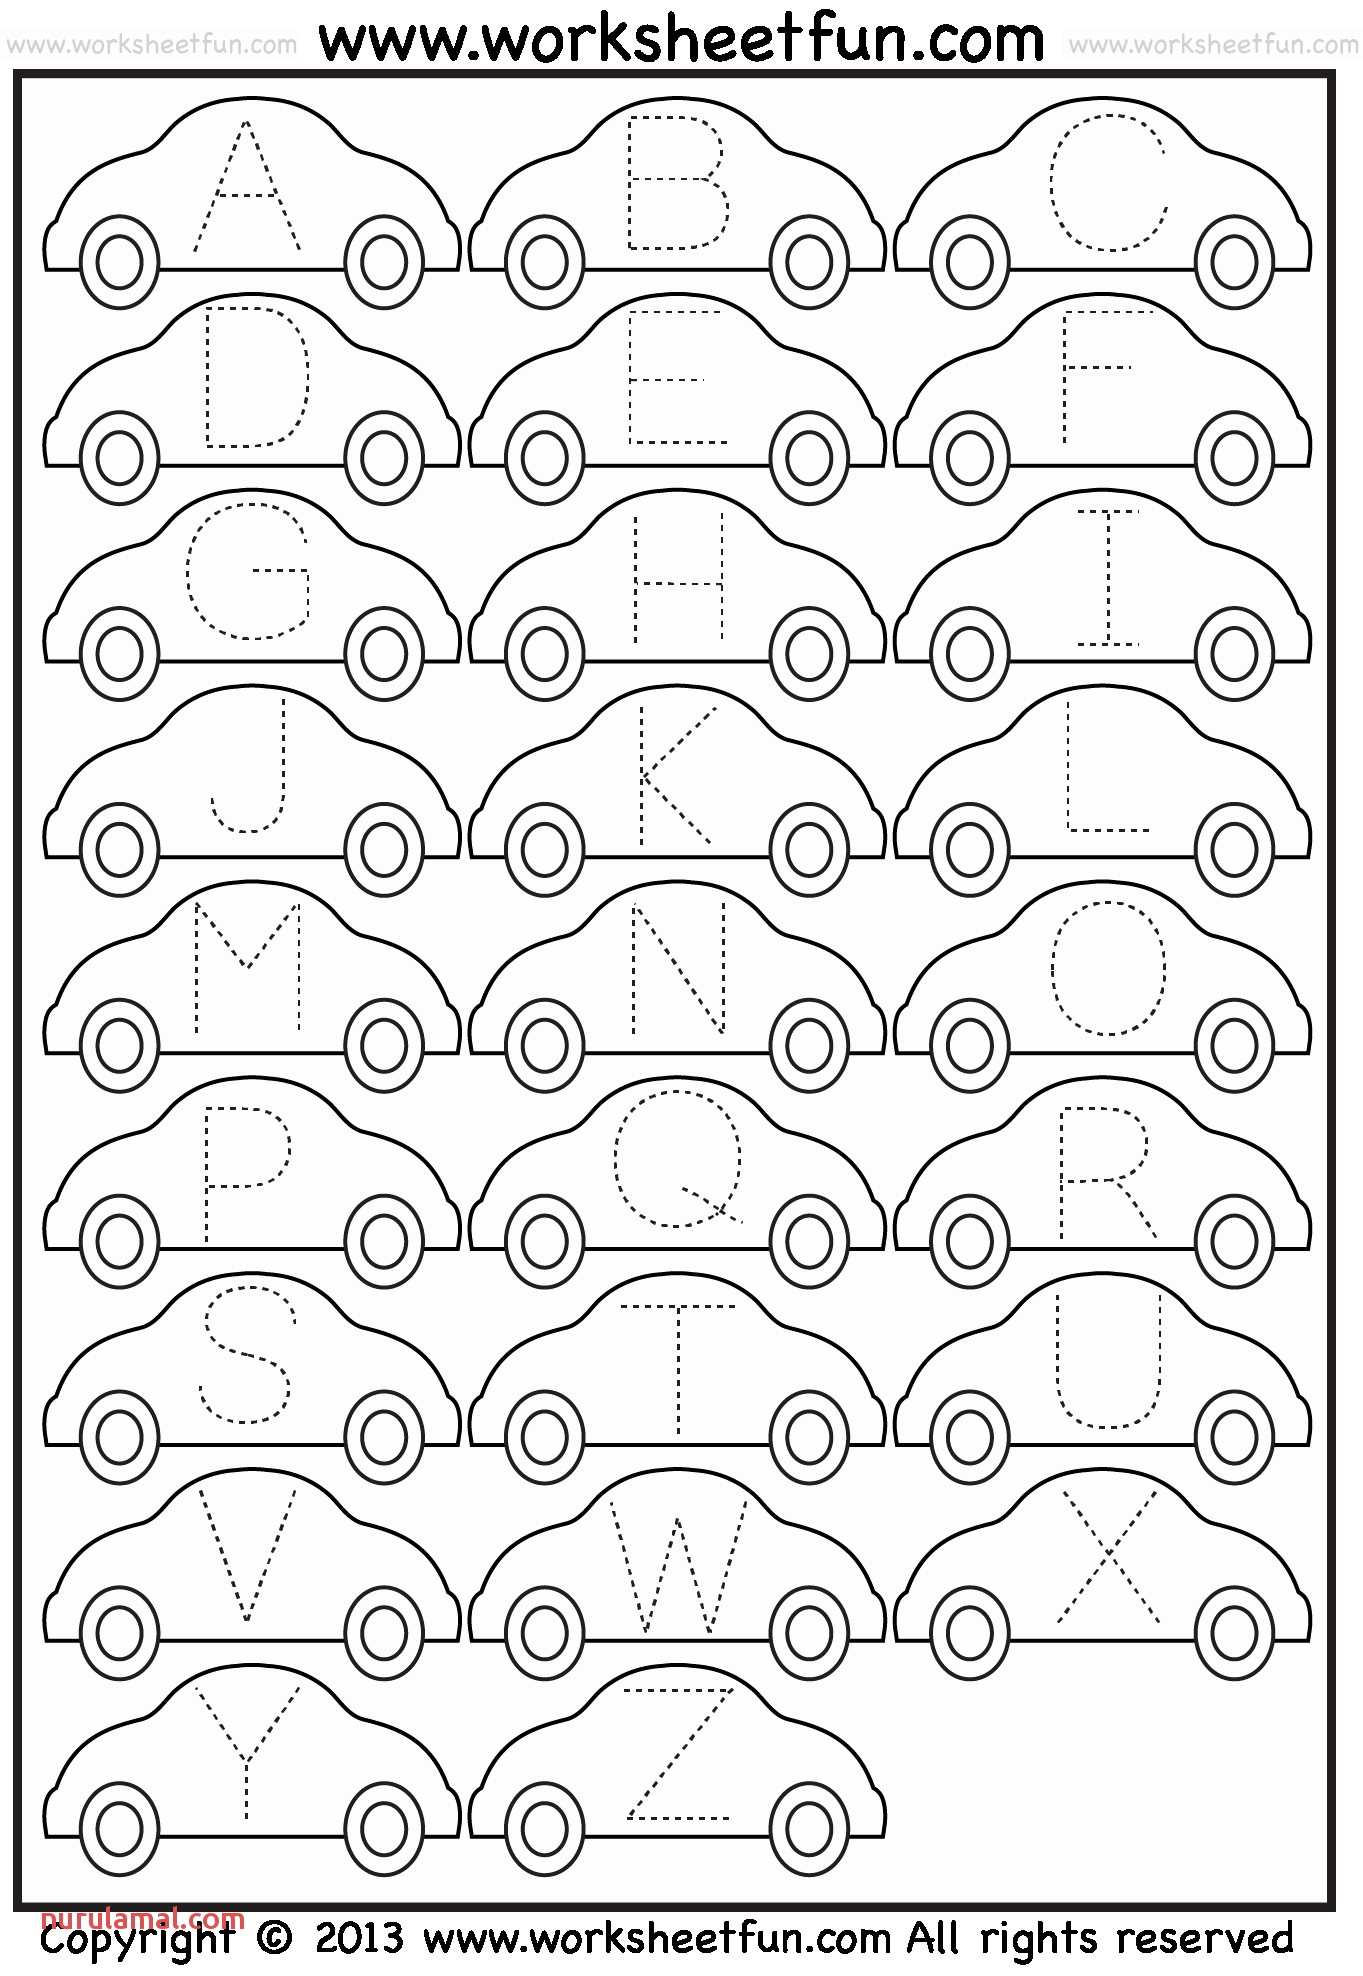 abc printables and letter tracing worksheet car free printable worksheets or abc printables